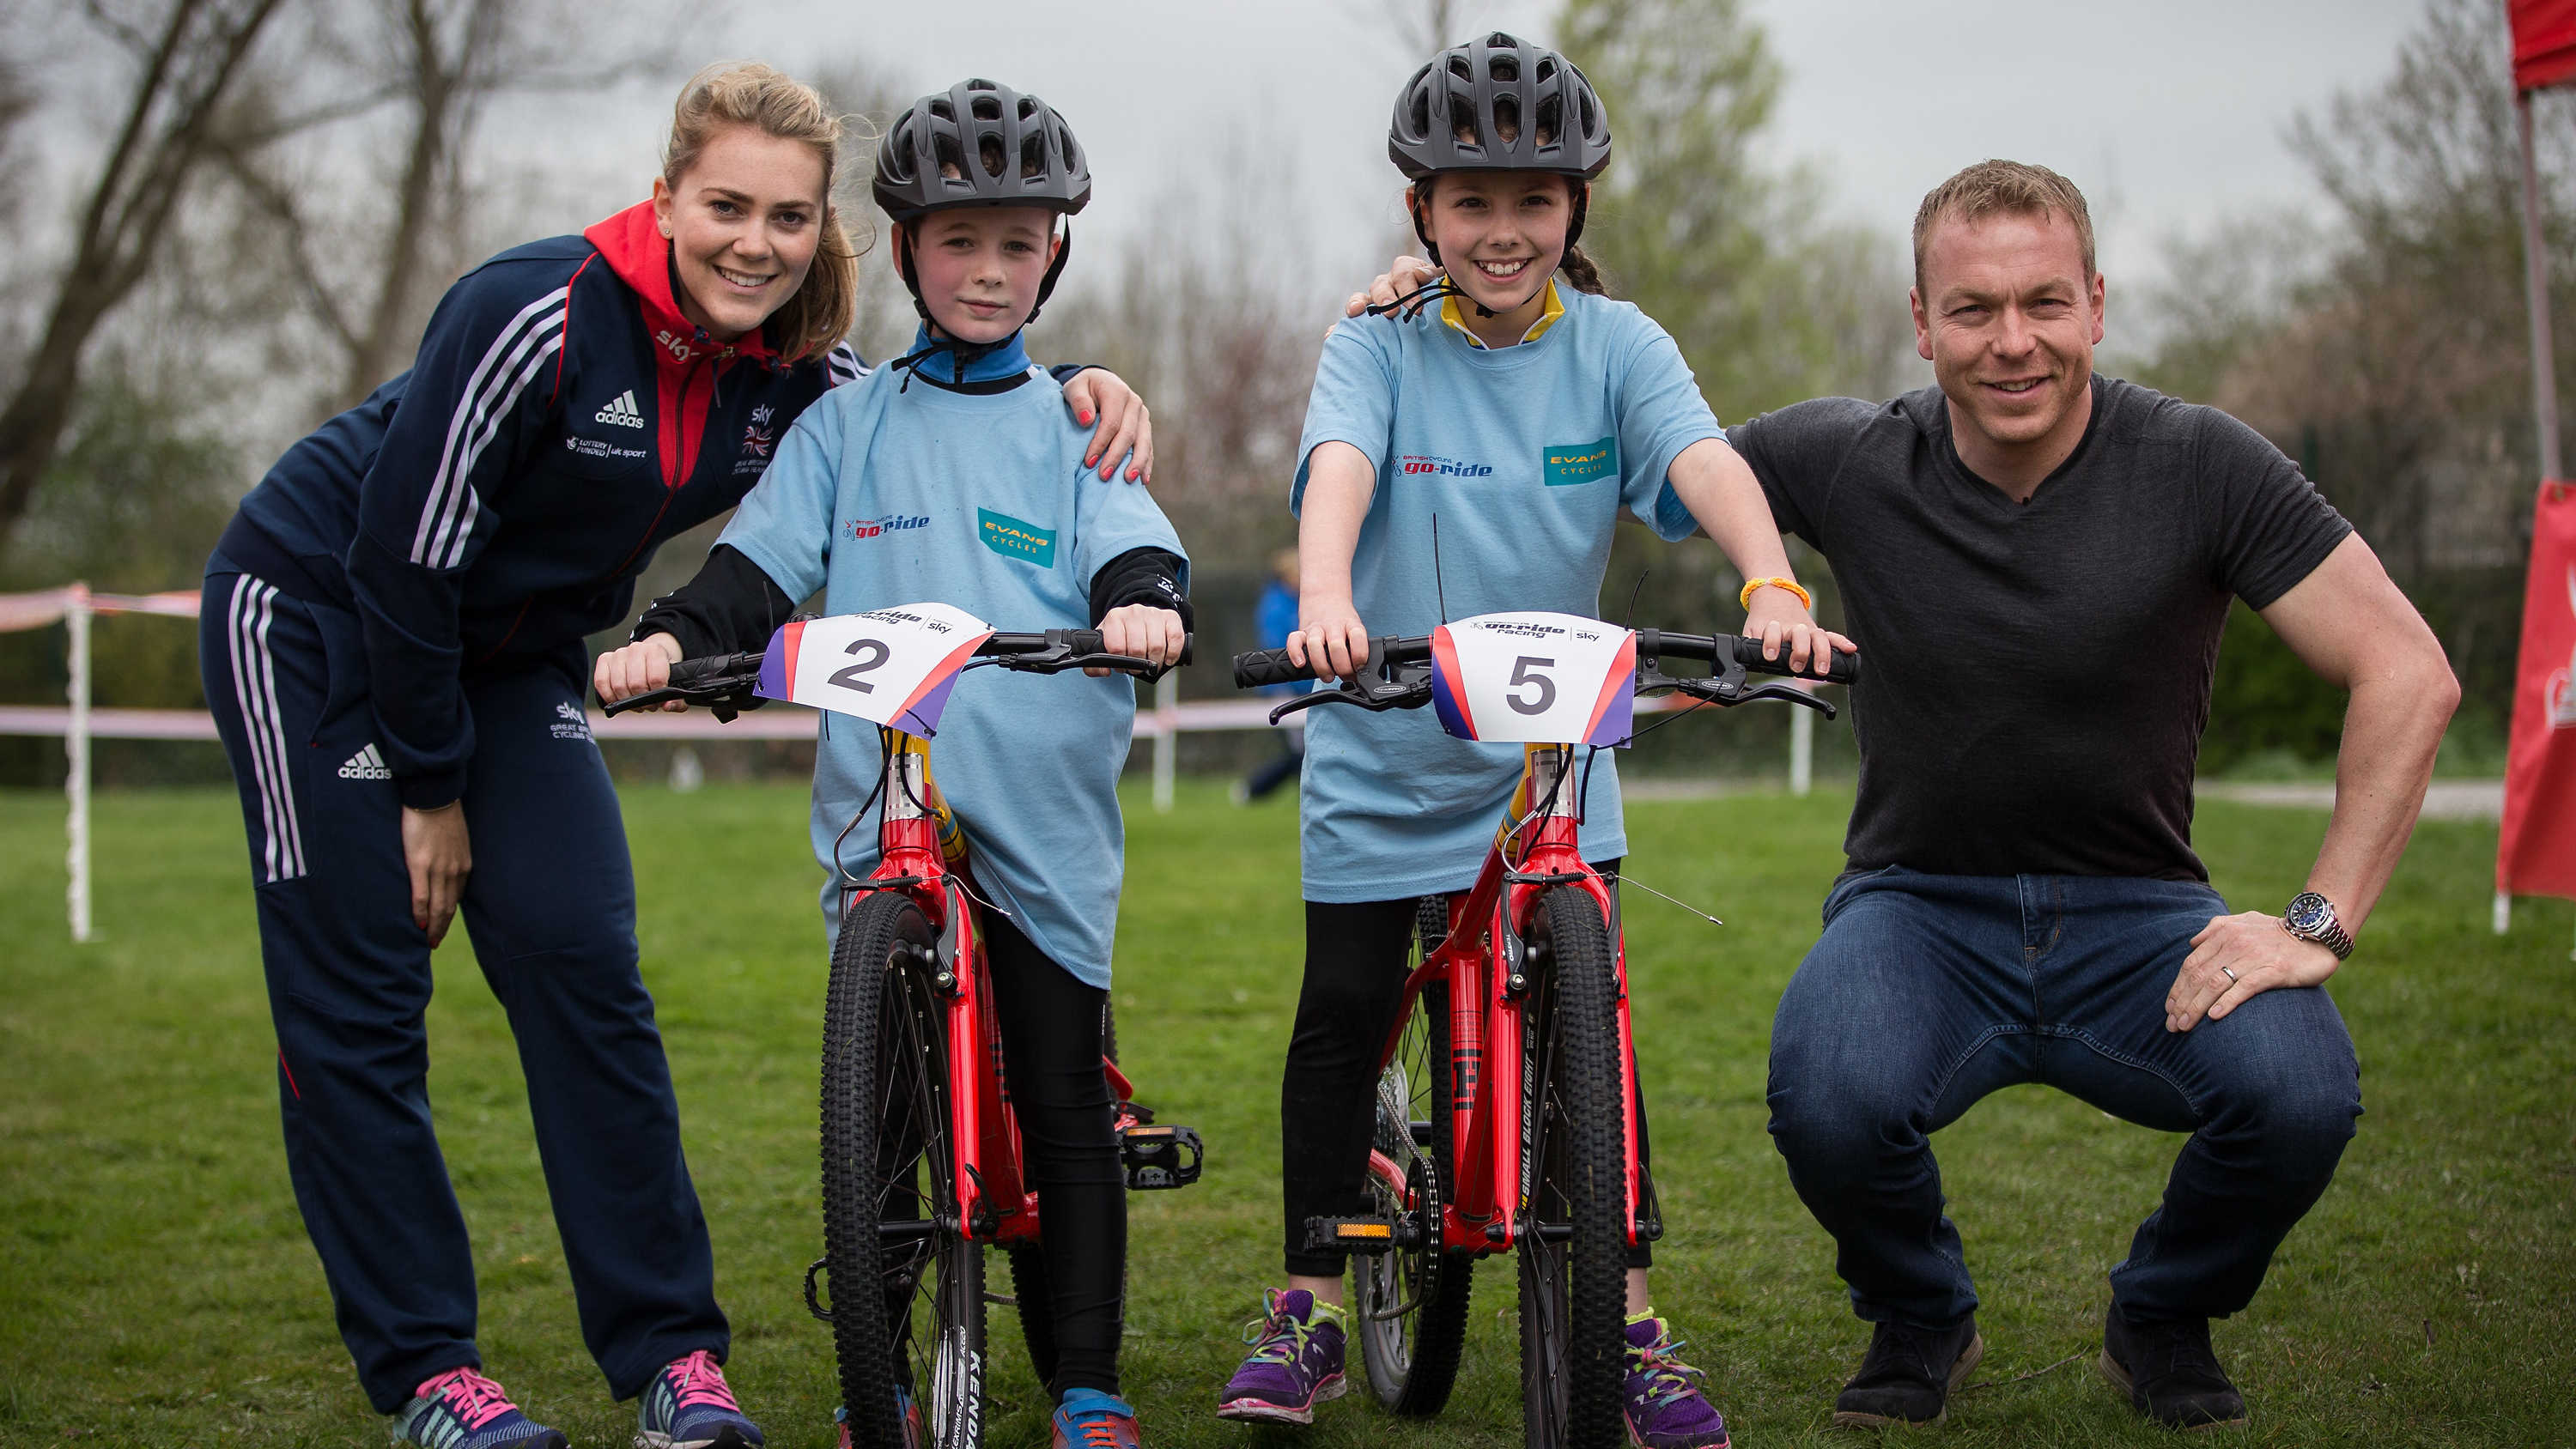 Hoy helping to launch a partnership between Evans Cycles and British Cycling's Go-Ride programme.